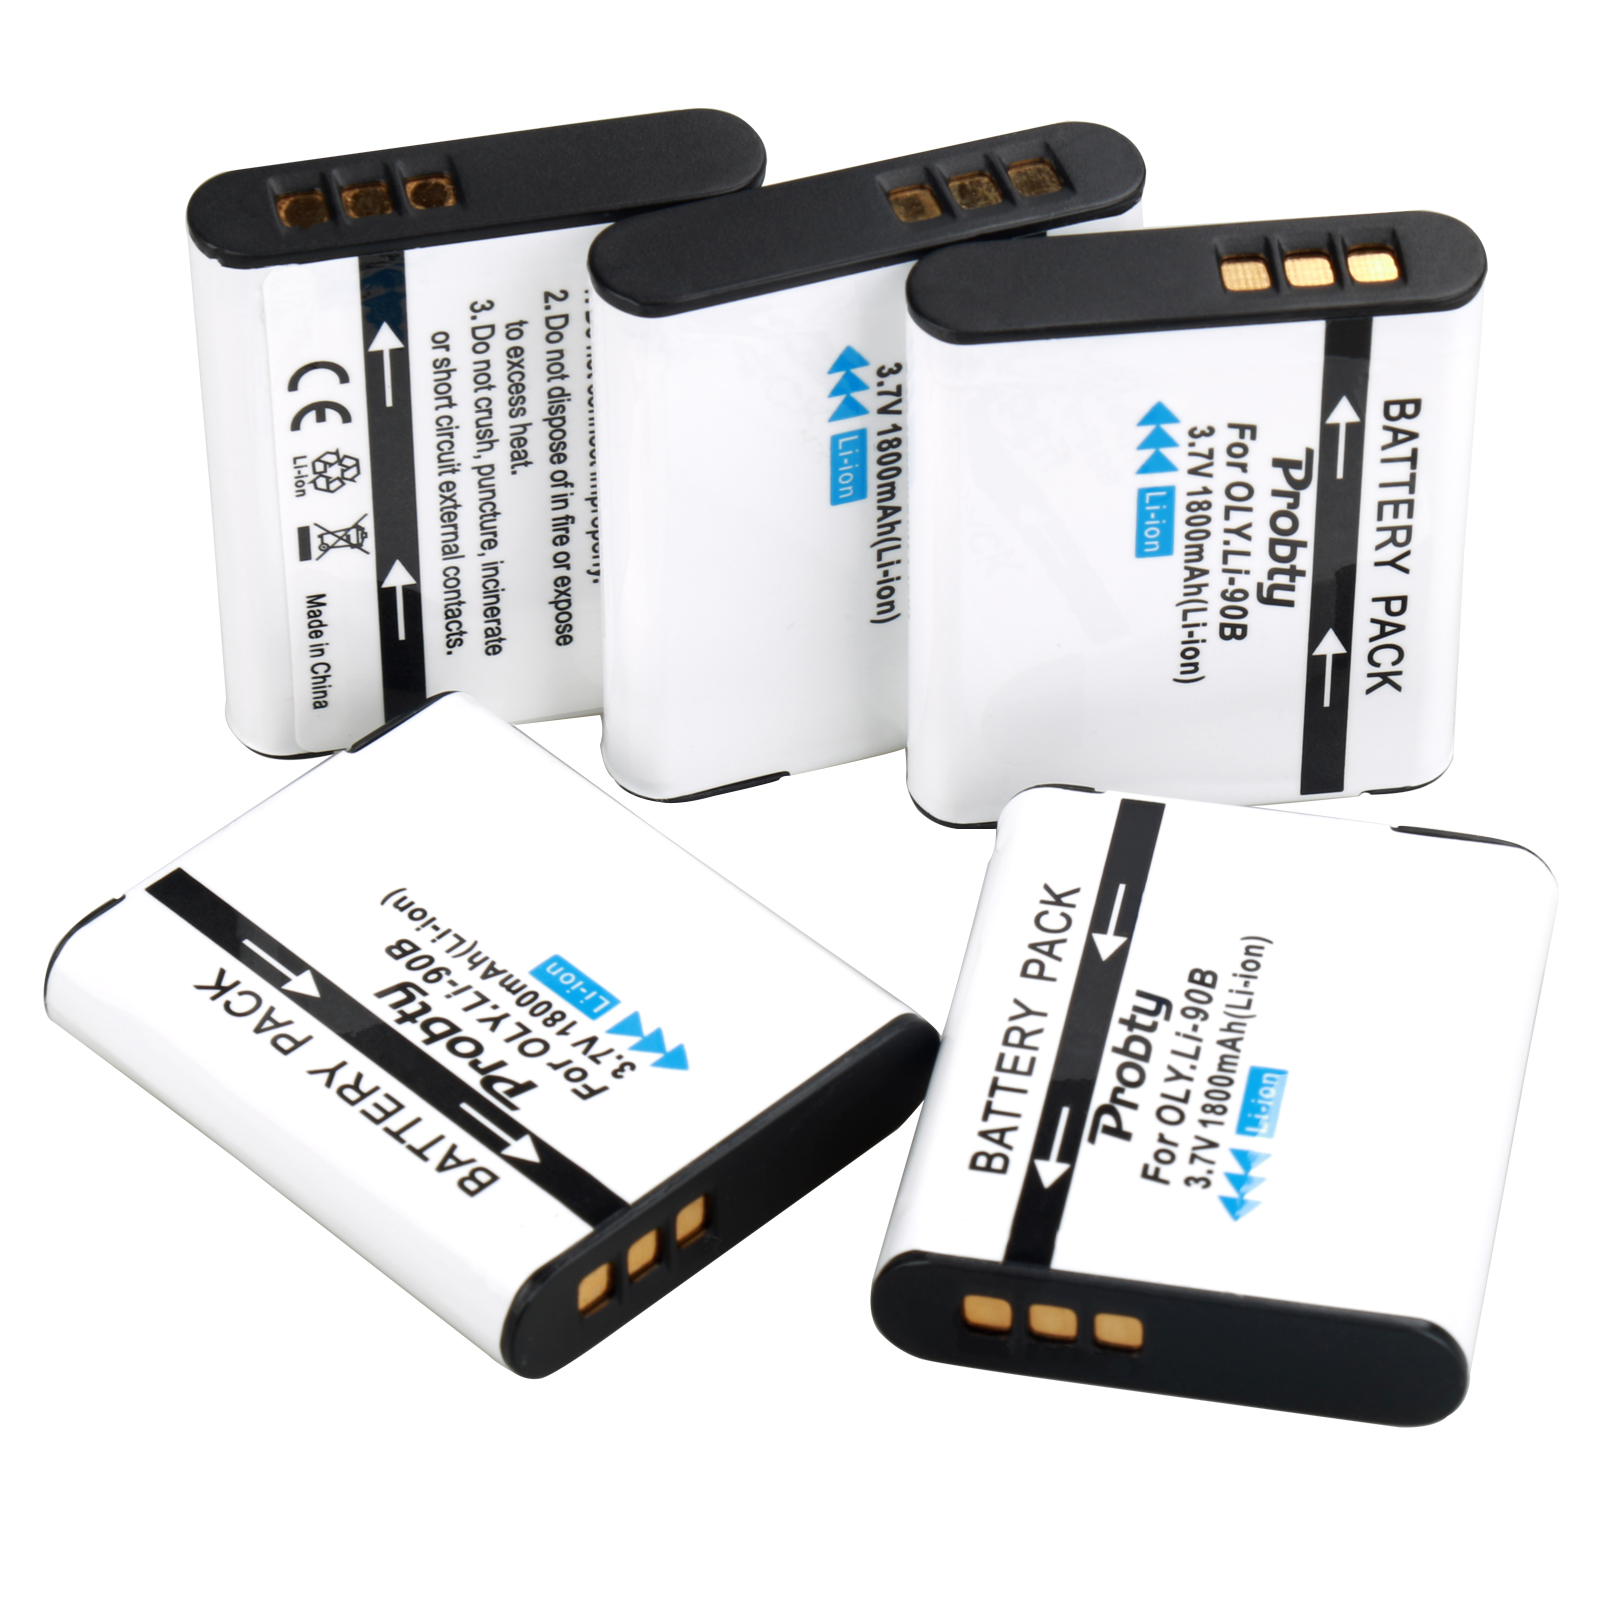 Image 5 - For Olympus LI 90B  LI 90B LI 92B Batteries or Charger for Olympus Tough TG 5 TG 2  TG 3 TG 4 TG Tracker SH 1 SH 2 SP 100 IHS-in Digital Batteries from Consumer Electronics